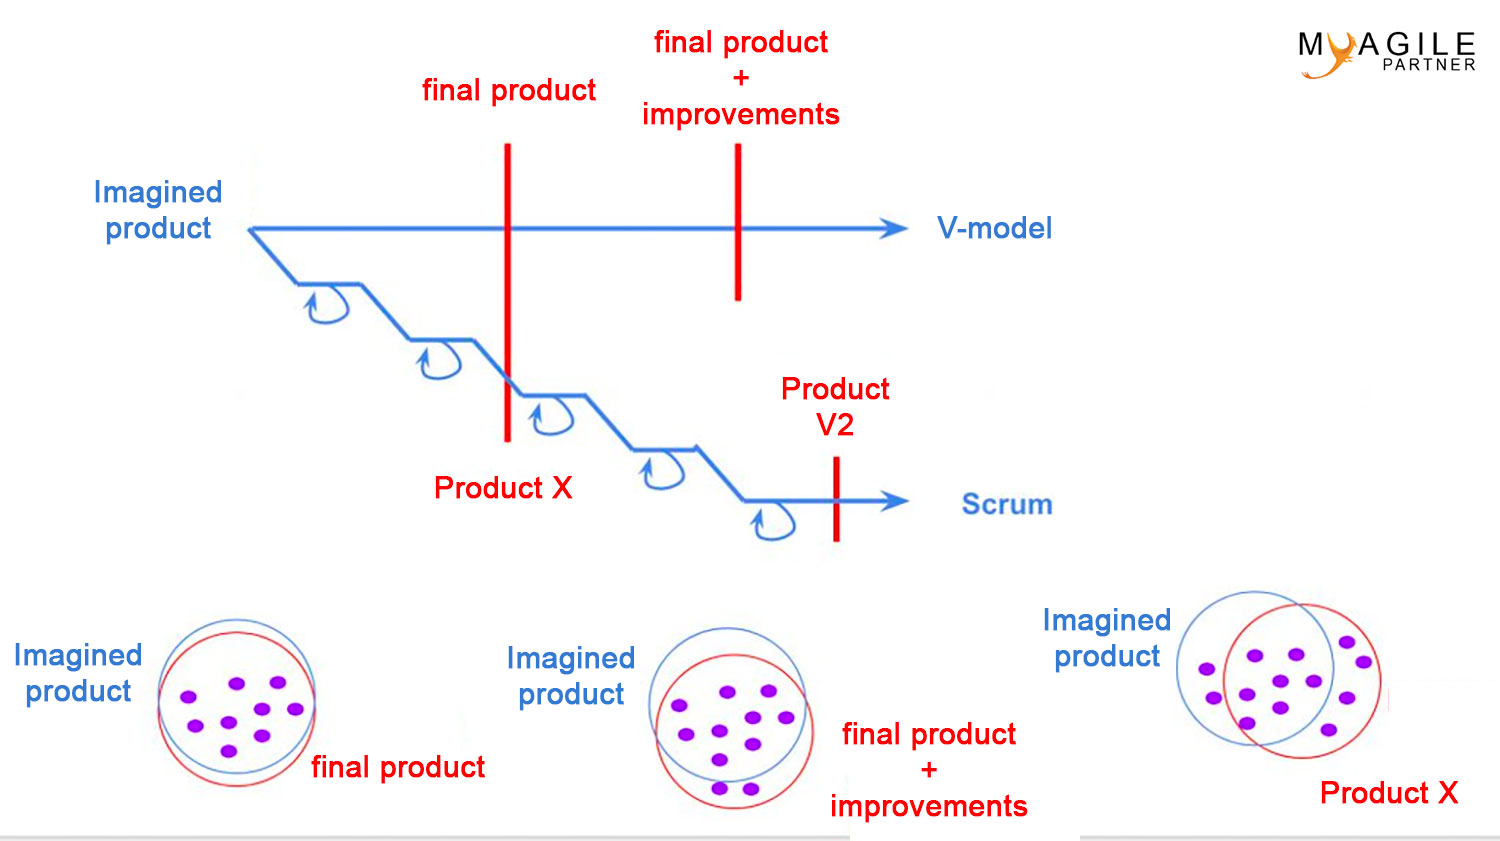 v-model vs scrum